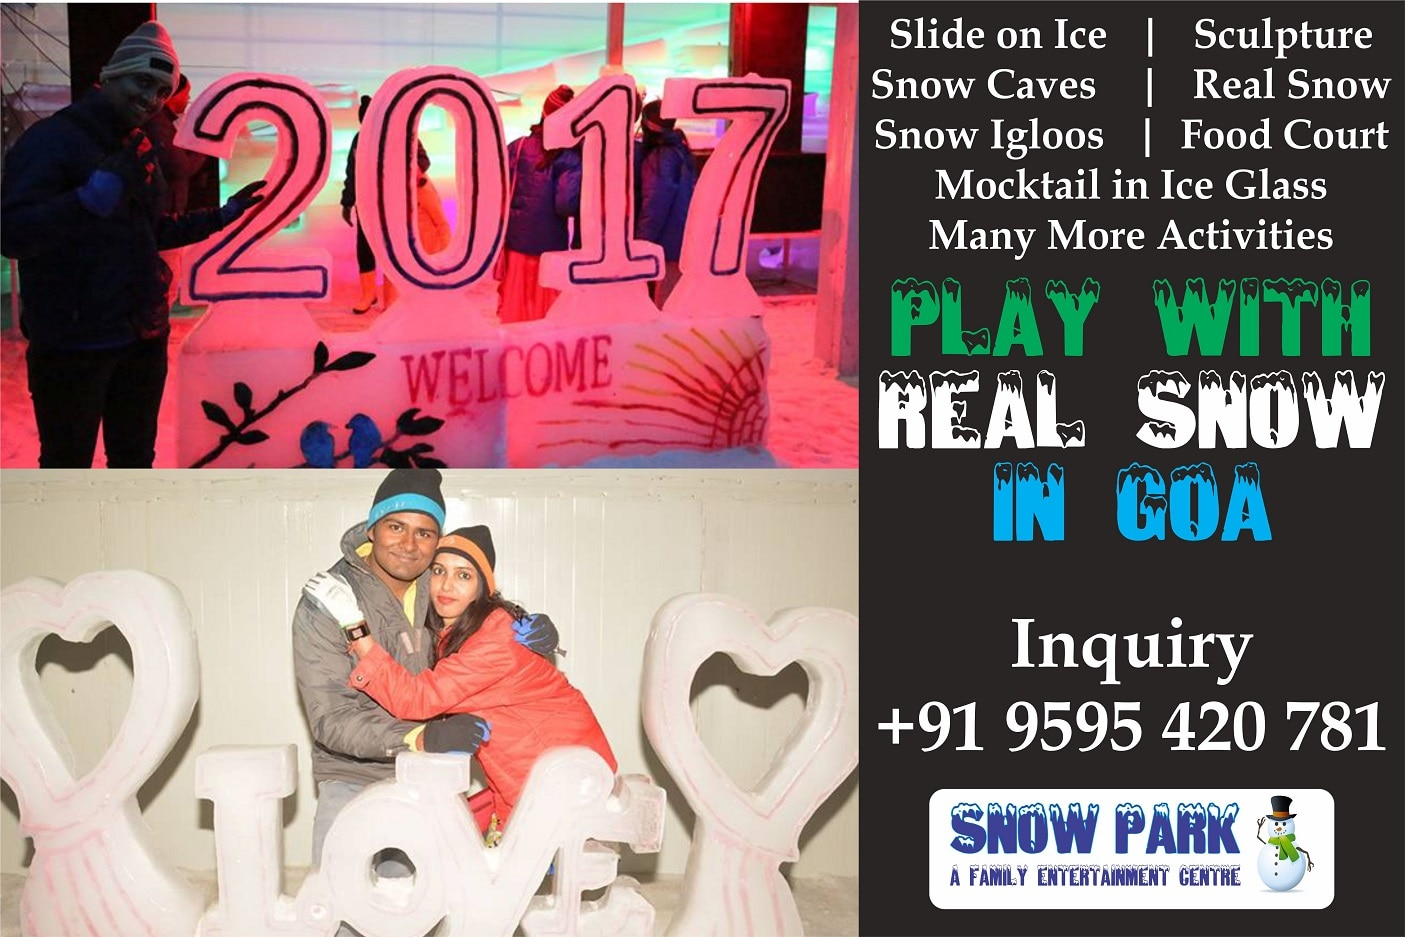 #Slide on Ice #Sculpture #Snow Caves #Real Snow #Snow Igloos #Food Court #Mocktail in Ice Glass Many More Activities..  +91 9595420 781